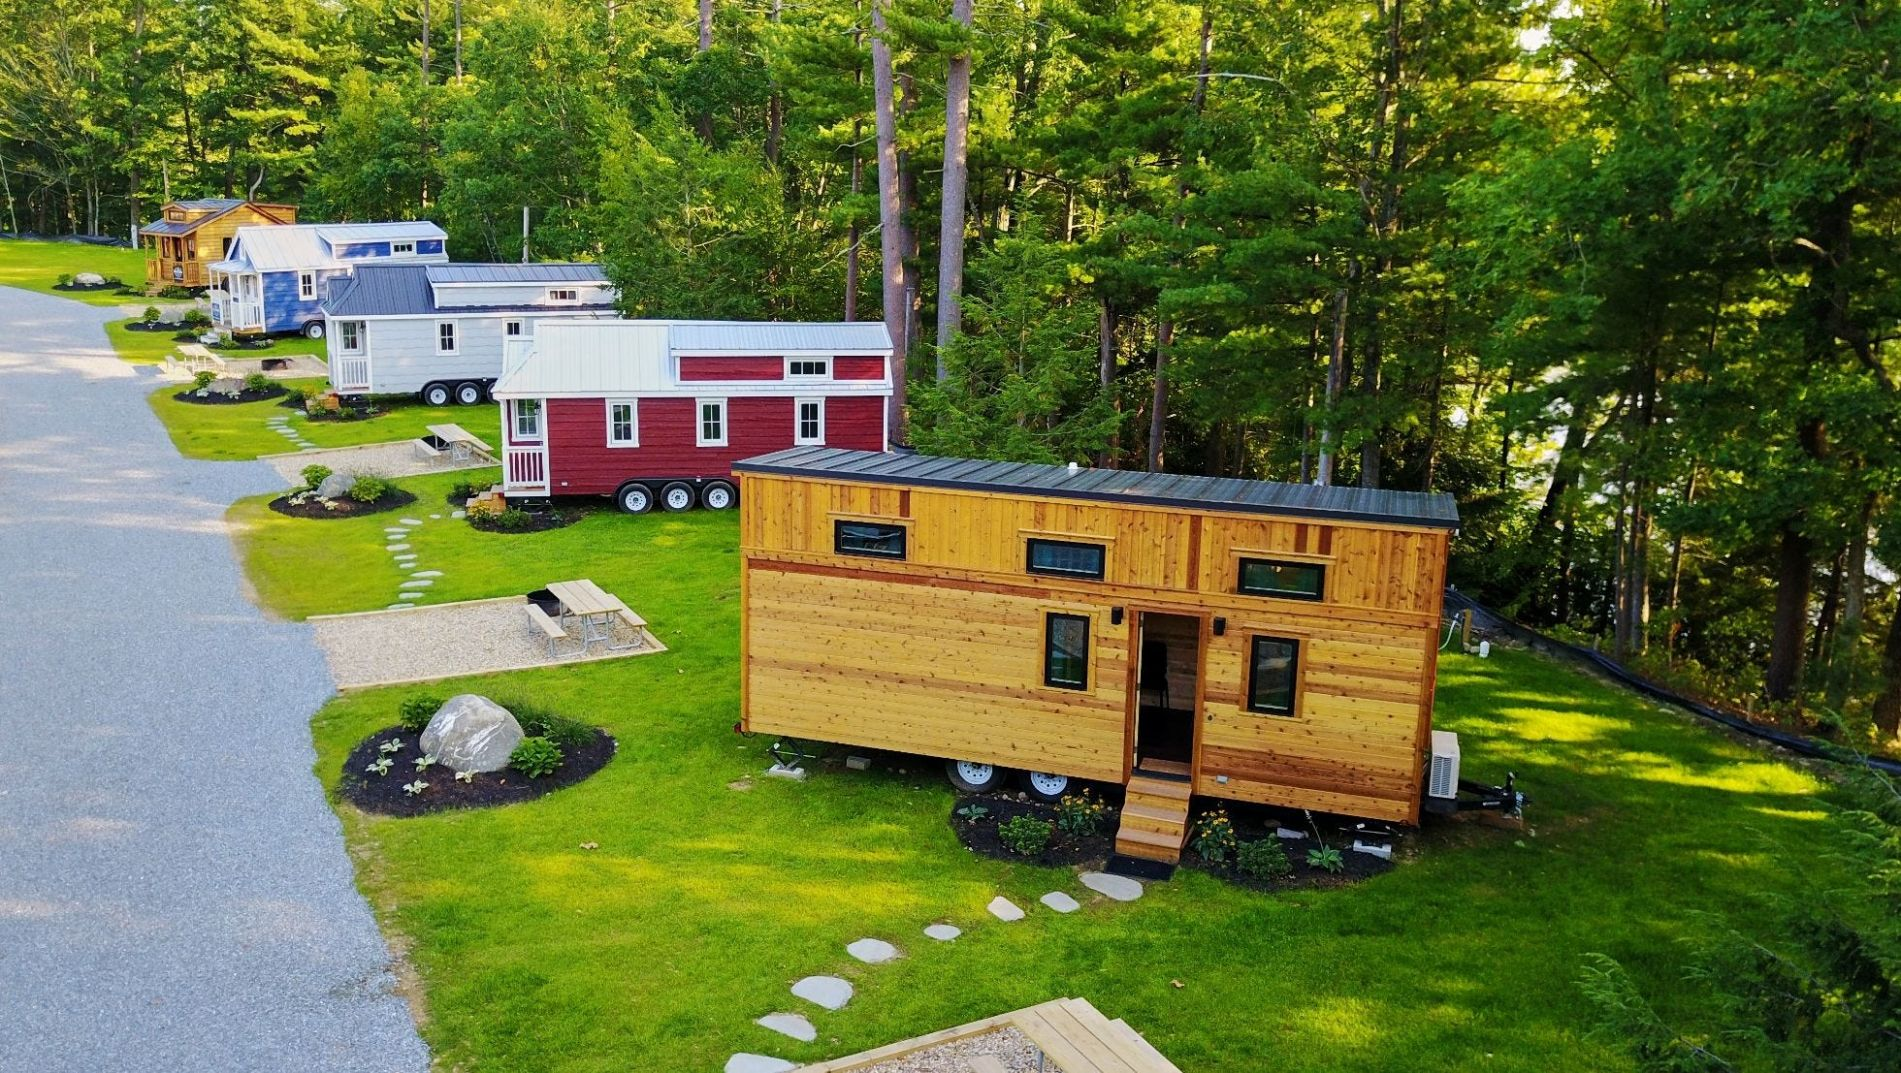 Tiny houses: Vacation rentals provide test drive on lifestyle trend - tiny house vacation rental